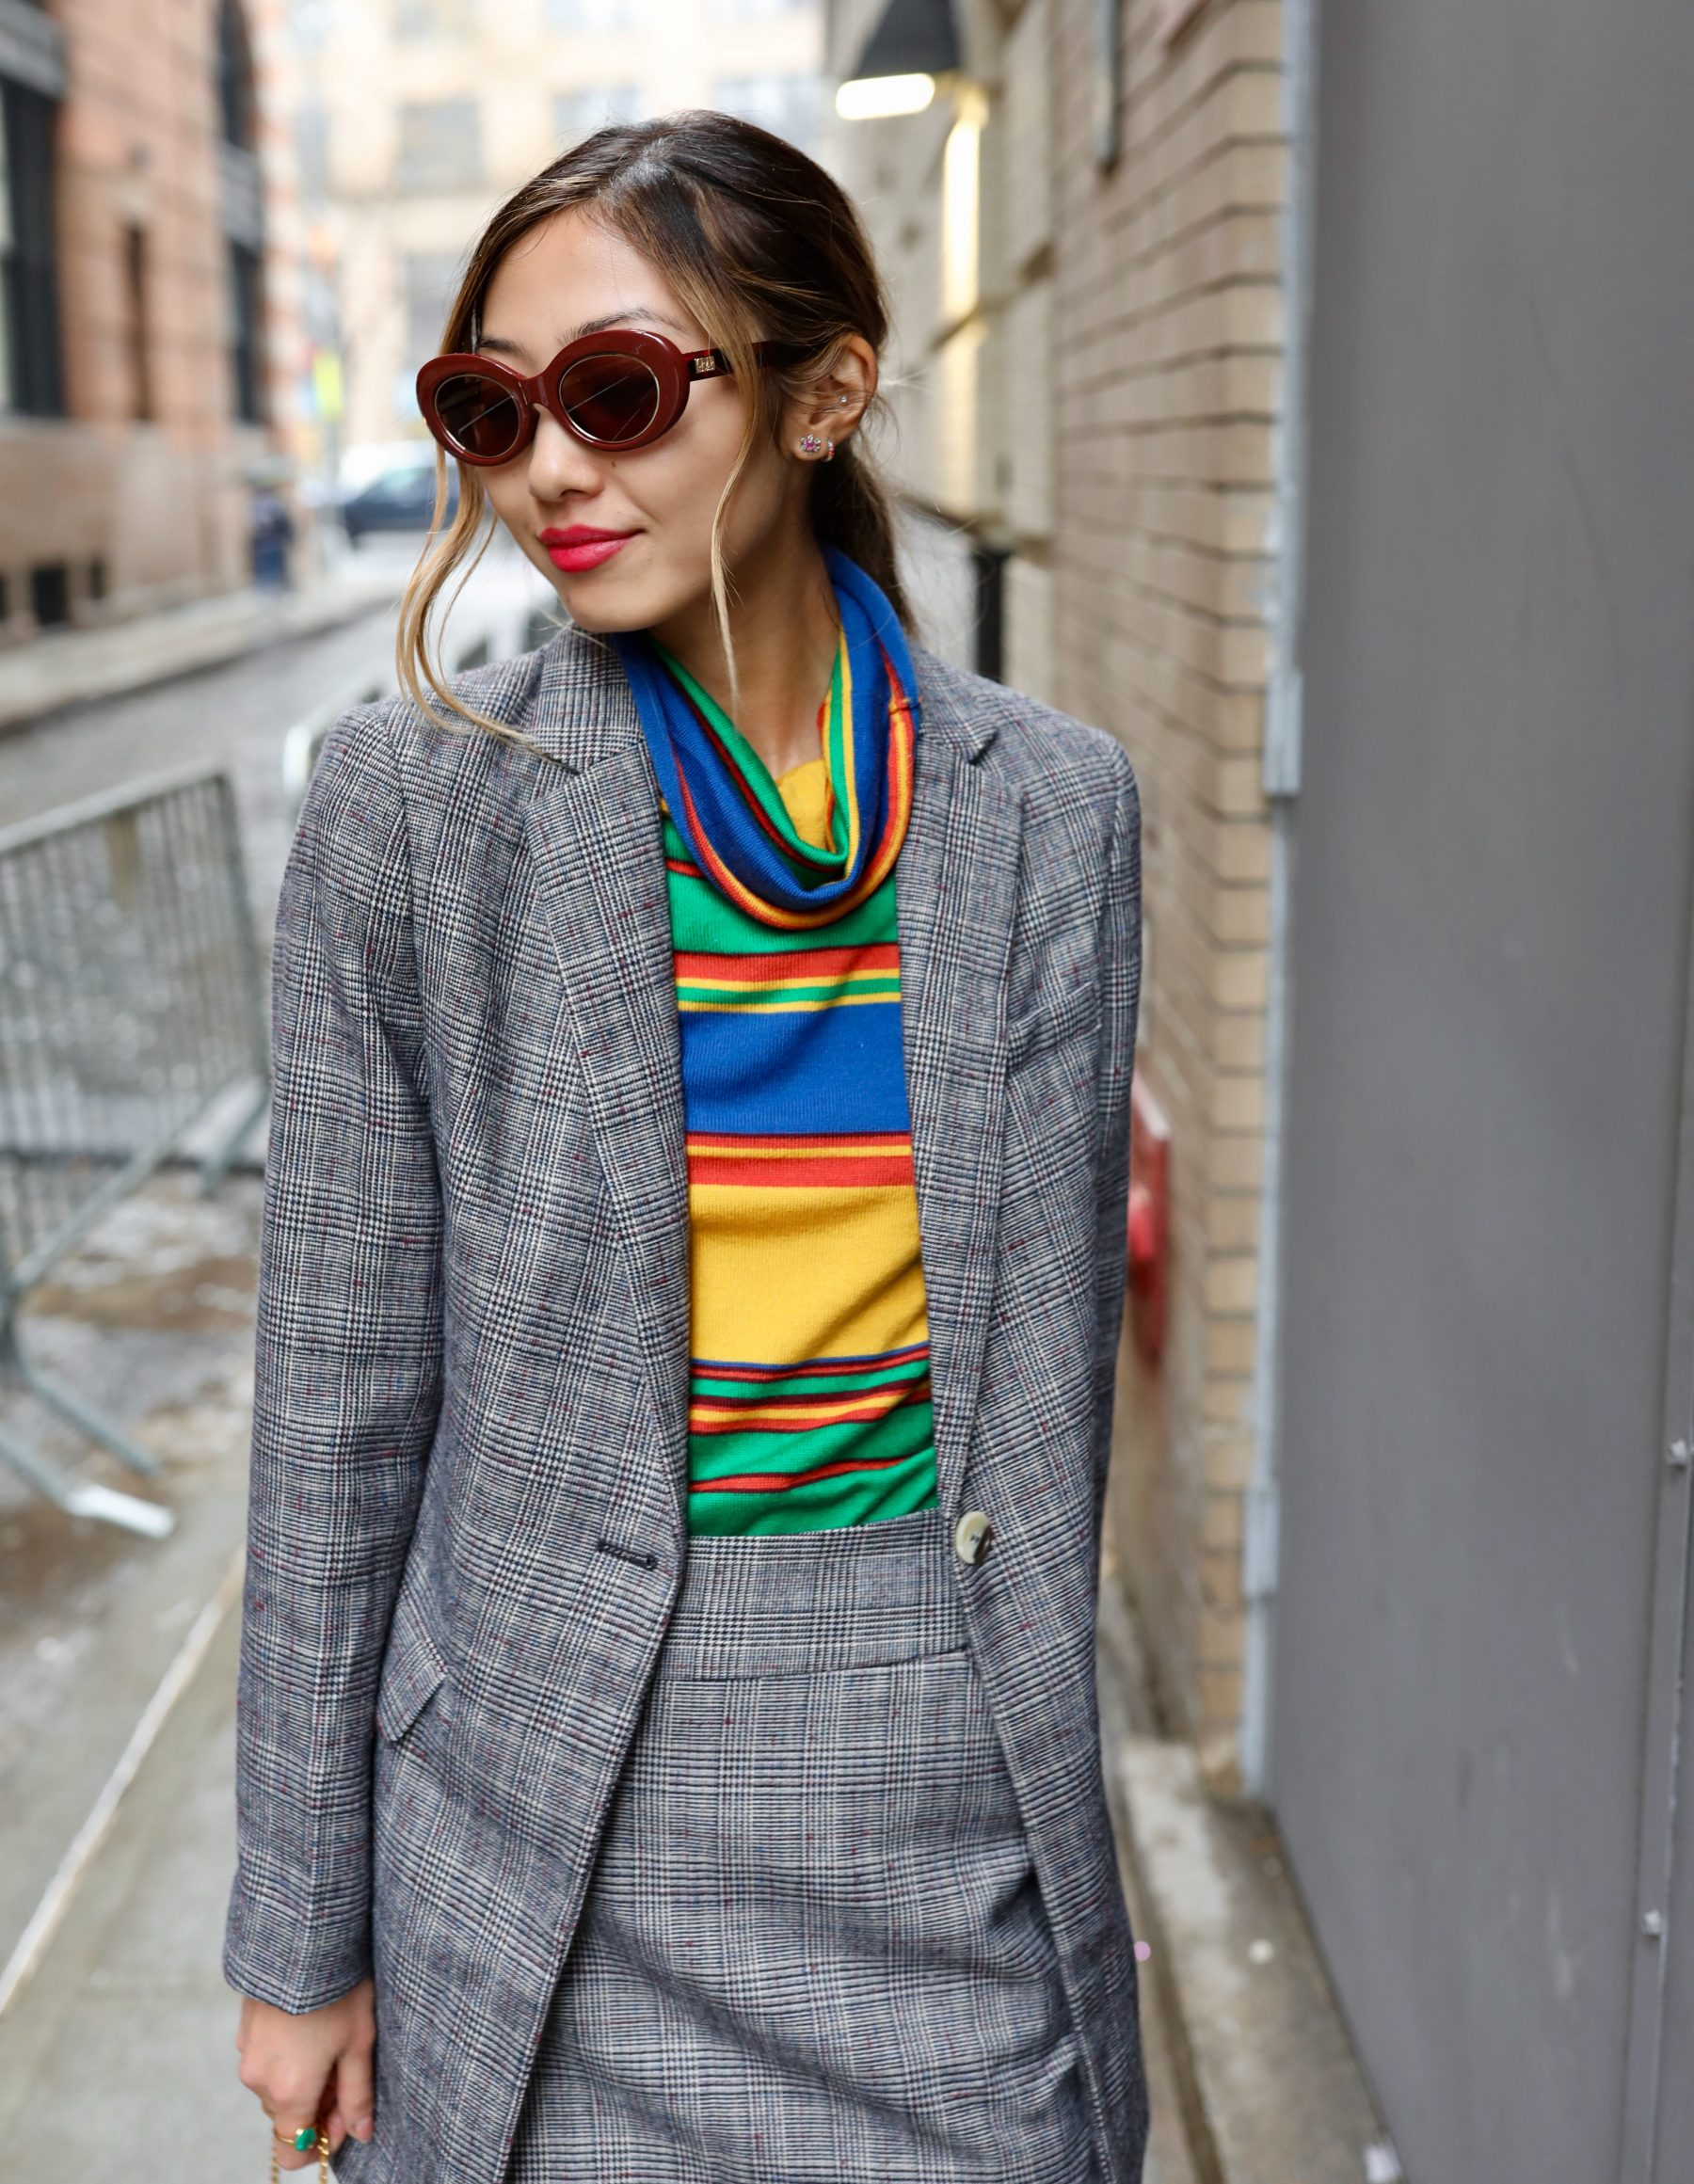 f8df931bcfac4f Check Suit (NYFW Look) · February 19